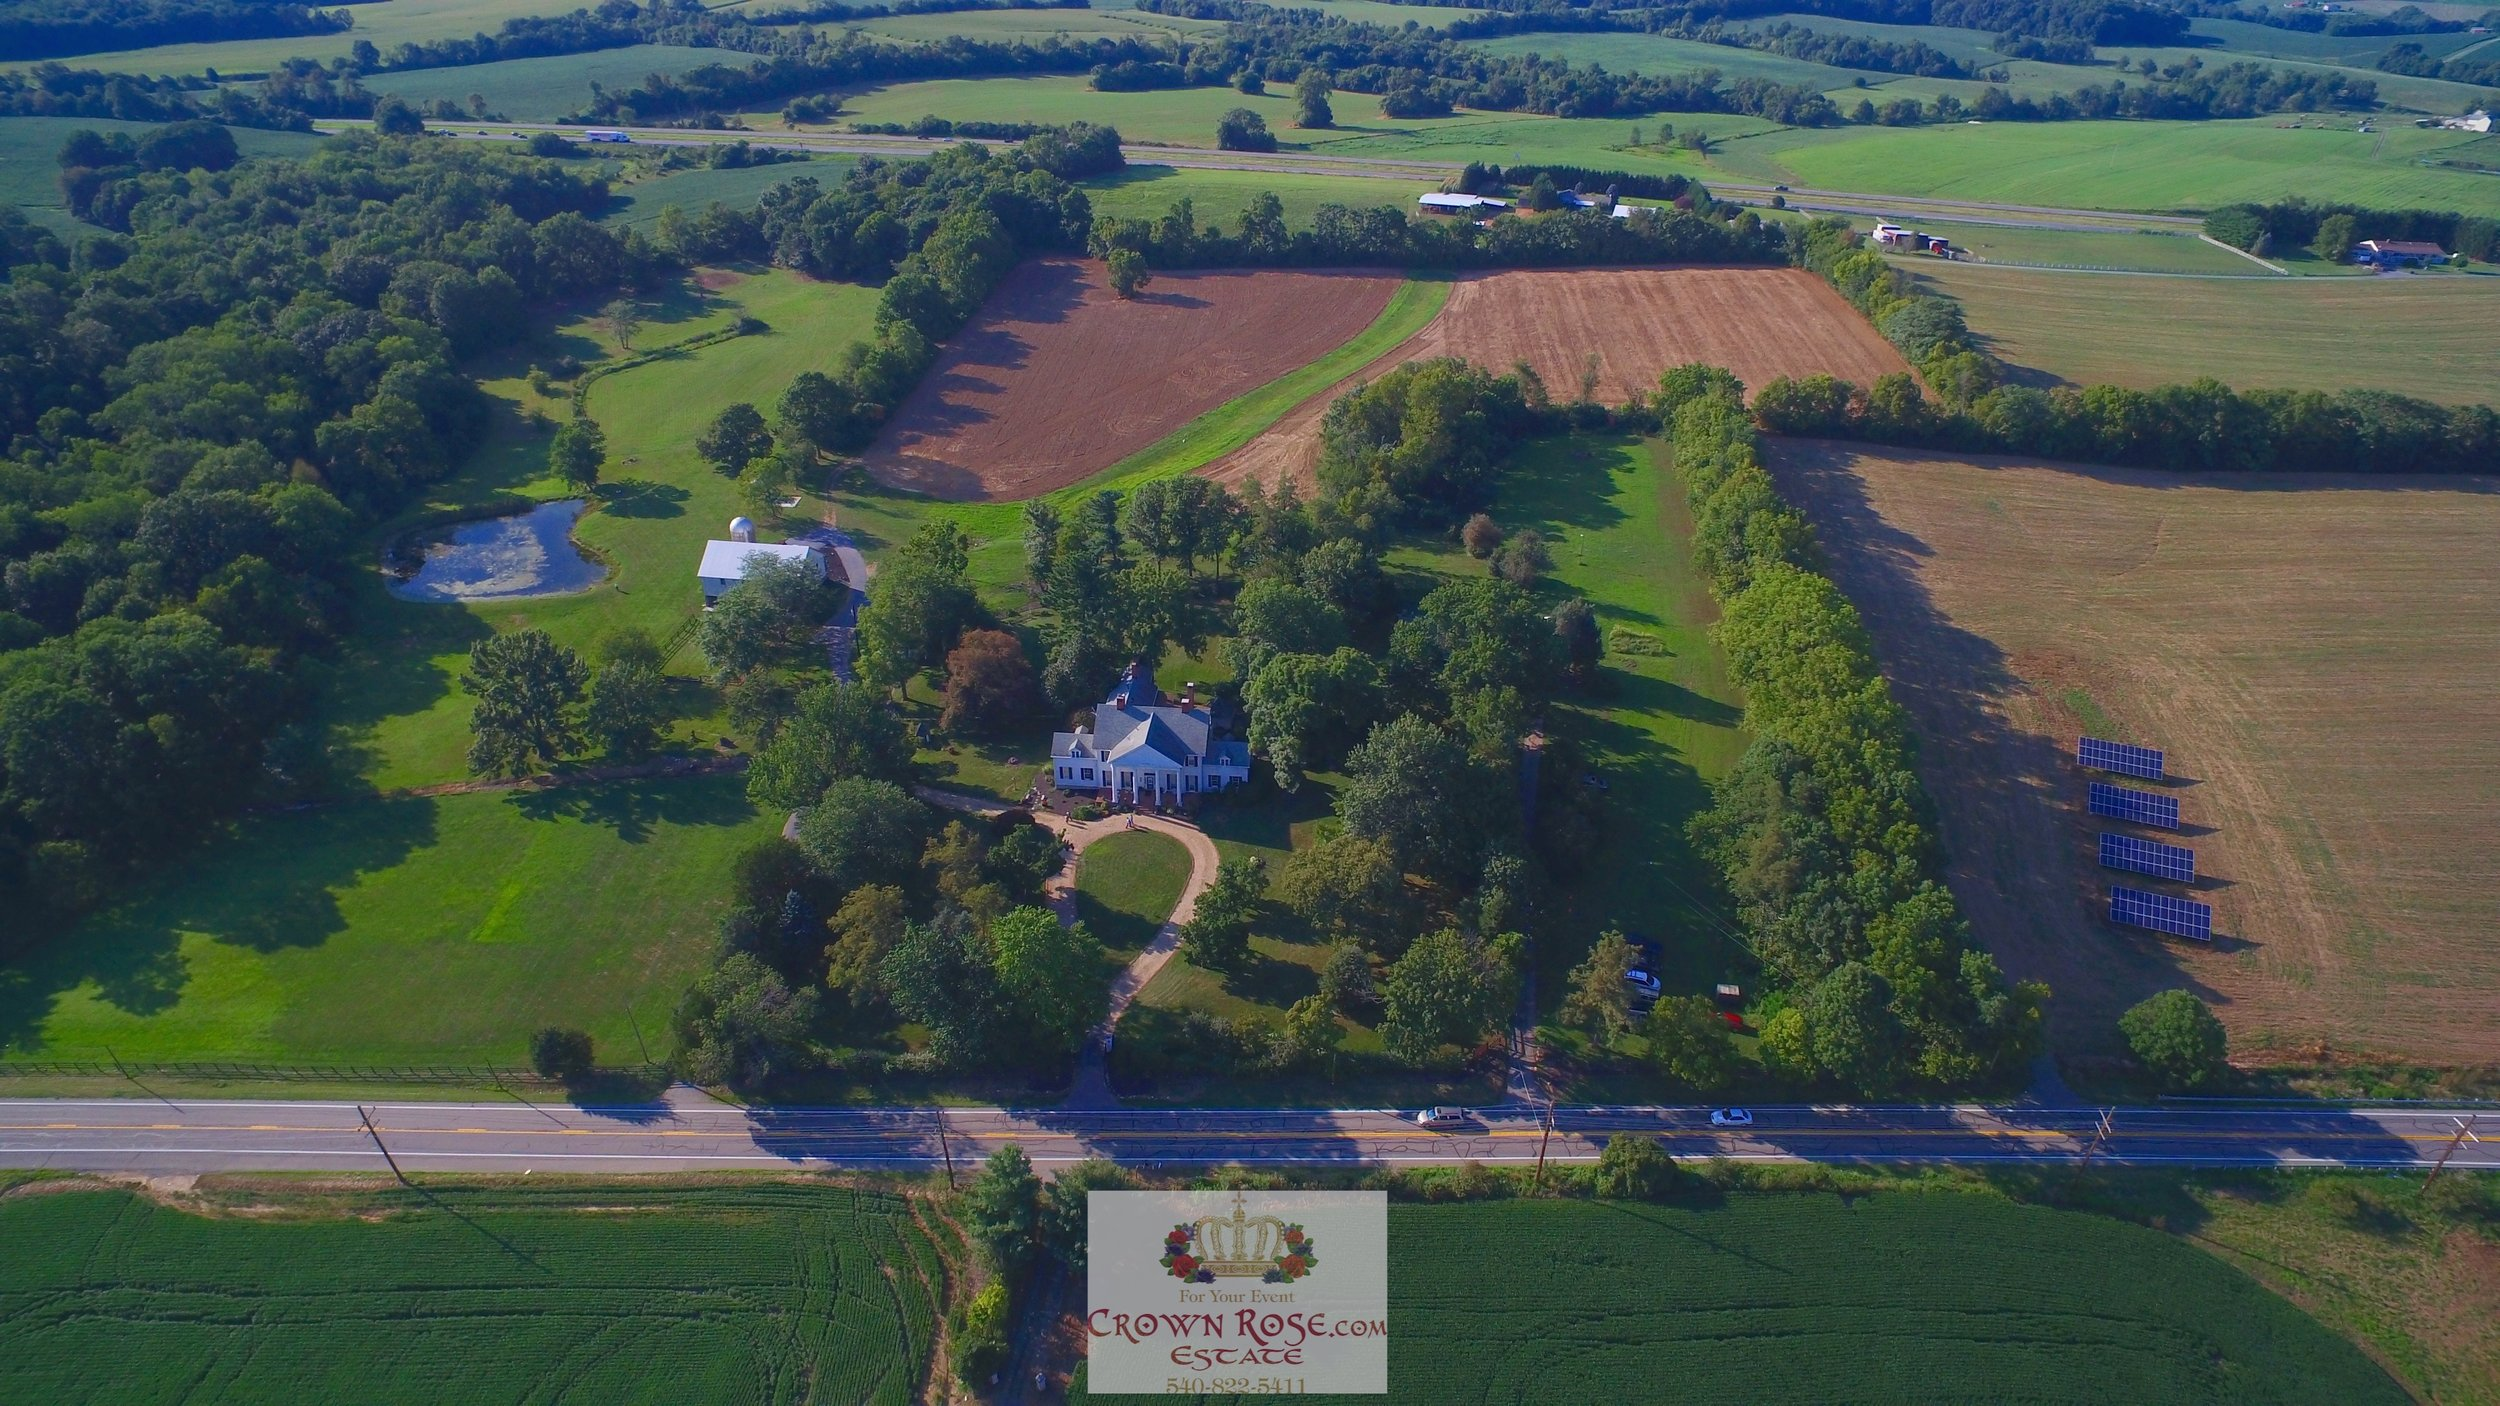 CR Logo WeddingsEstateDrone#crownroseestate, #weddingdestination, #barnrental,#historicsiterental, #historicvenuefilmsite, #downtonabbeywedding, #tentedweddings.jpg